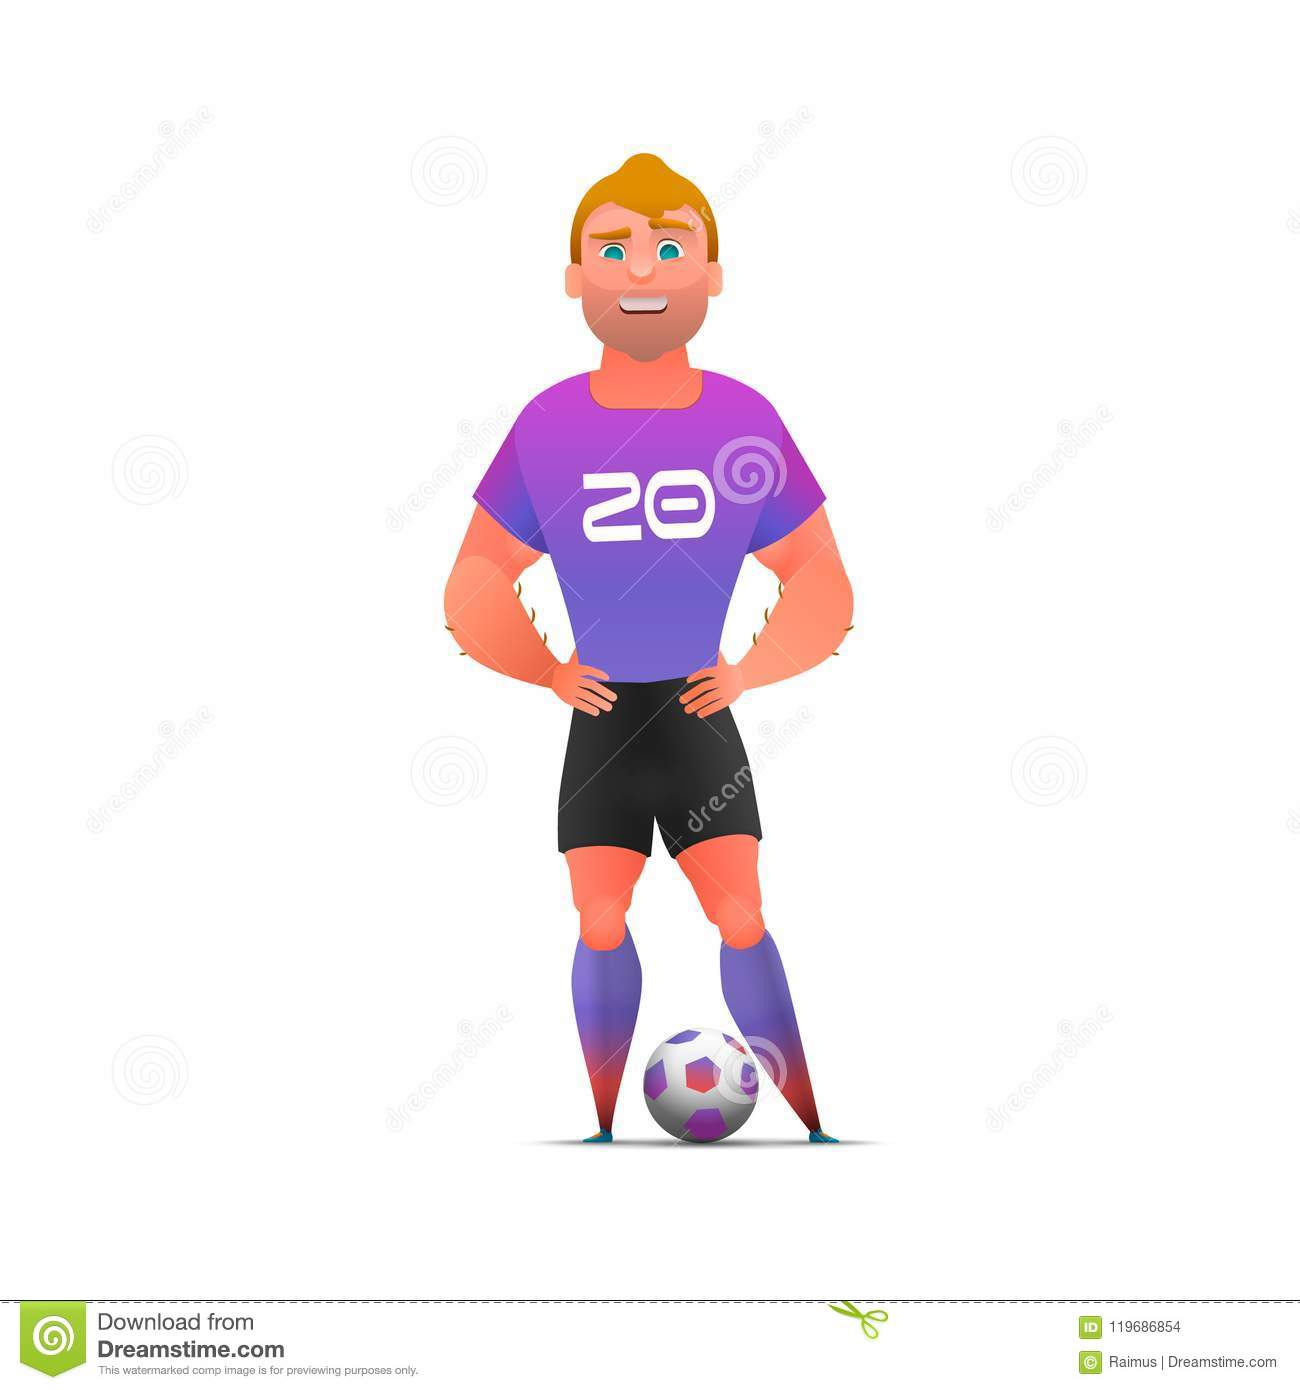 2019 year for lady- Professional cool soccer uniforms photo